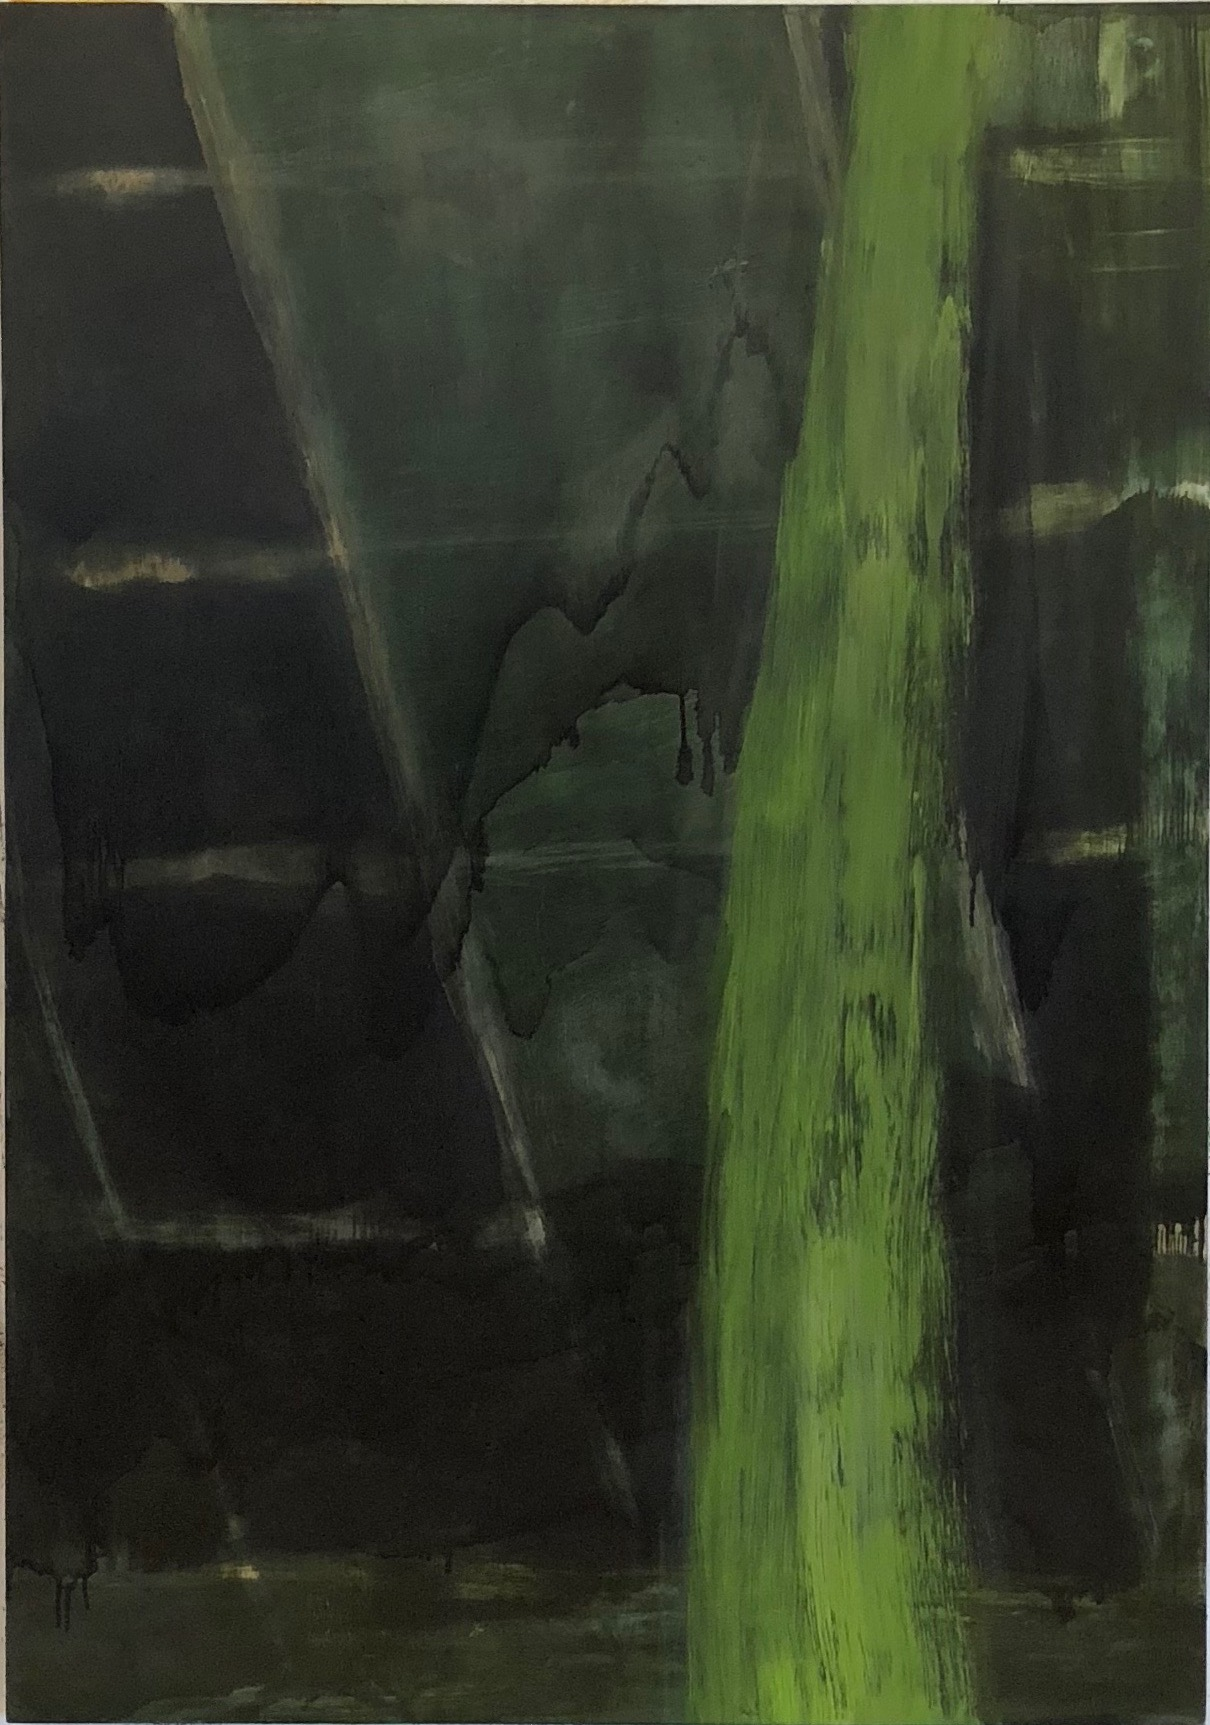 Vertical Green 2017-18 50 x 35in oil on wood